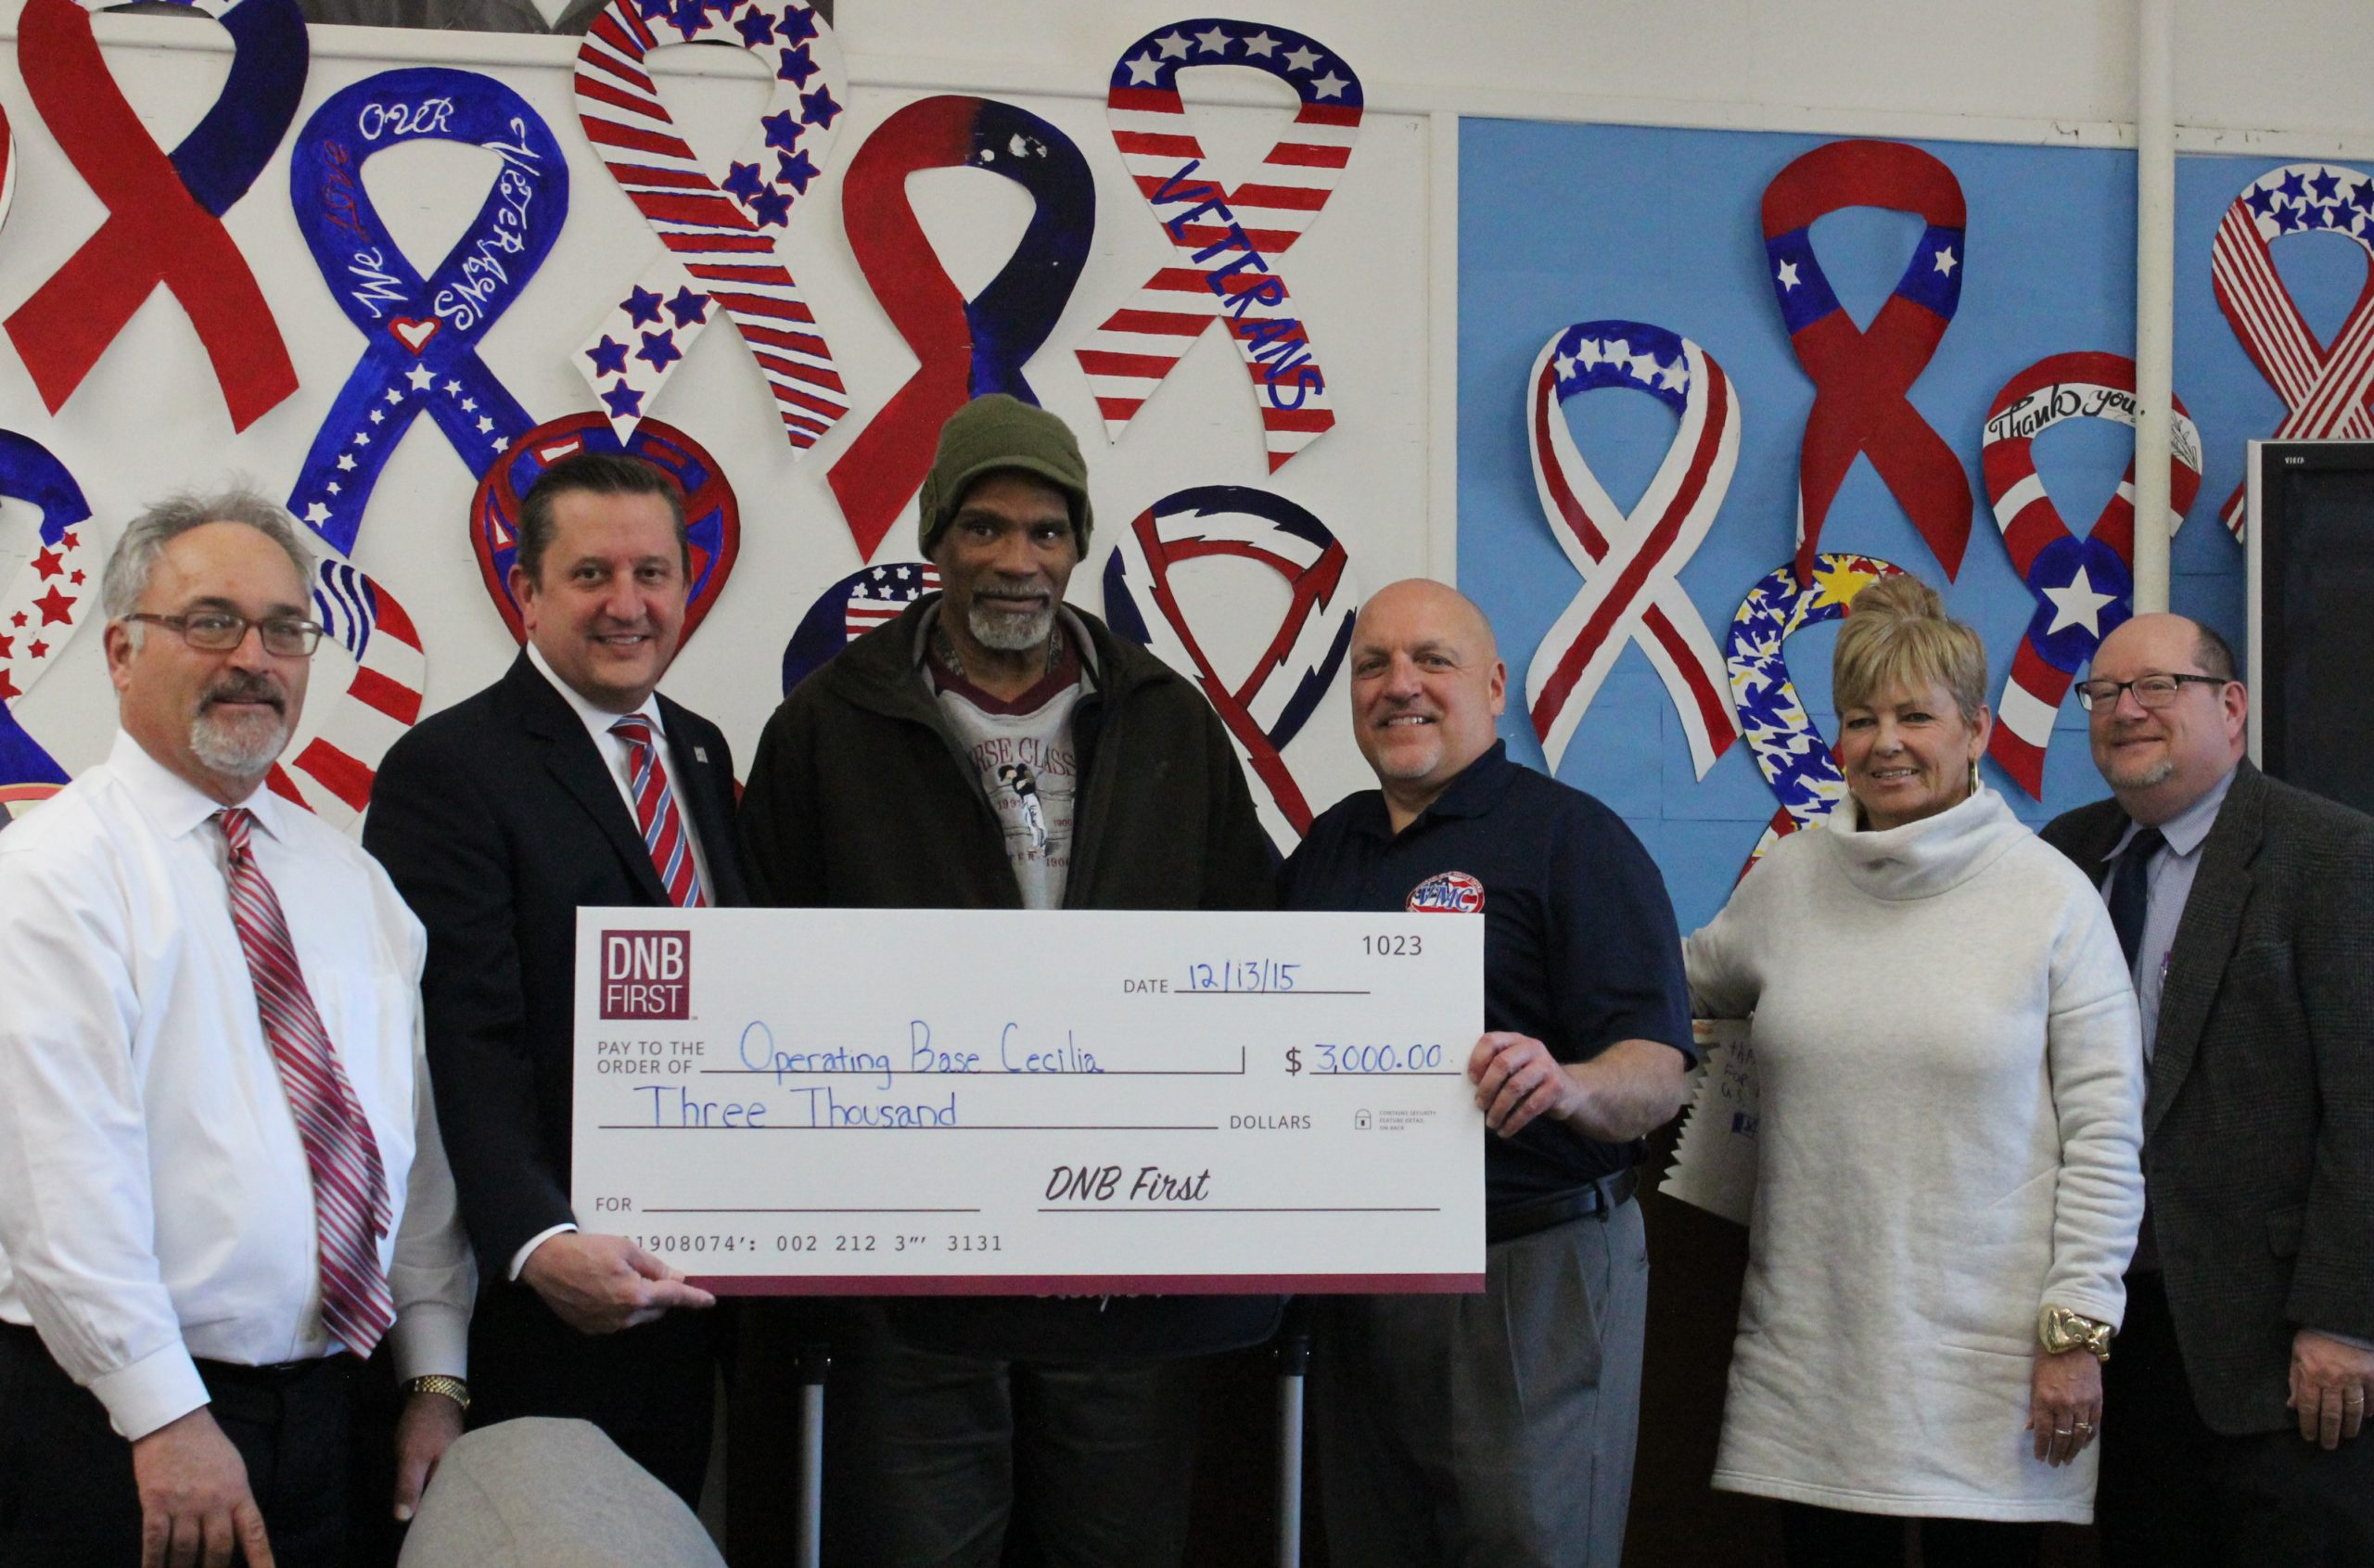 Committed to Helping Veterans, DNB First Donates $3,000 to Operating Base Cecilia